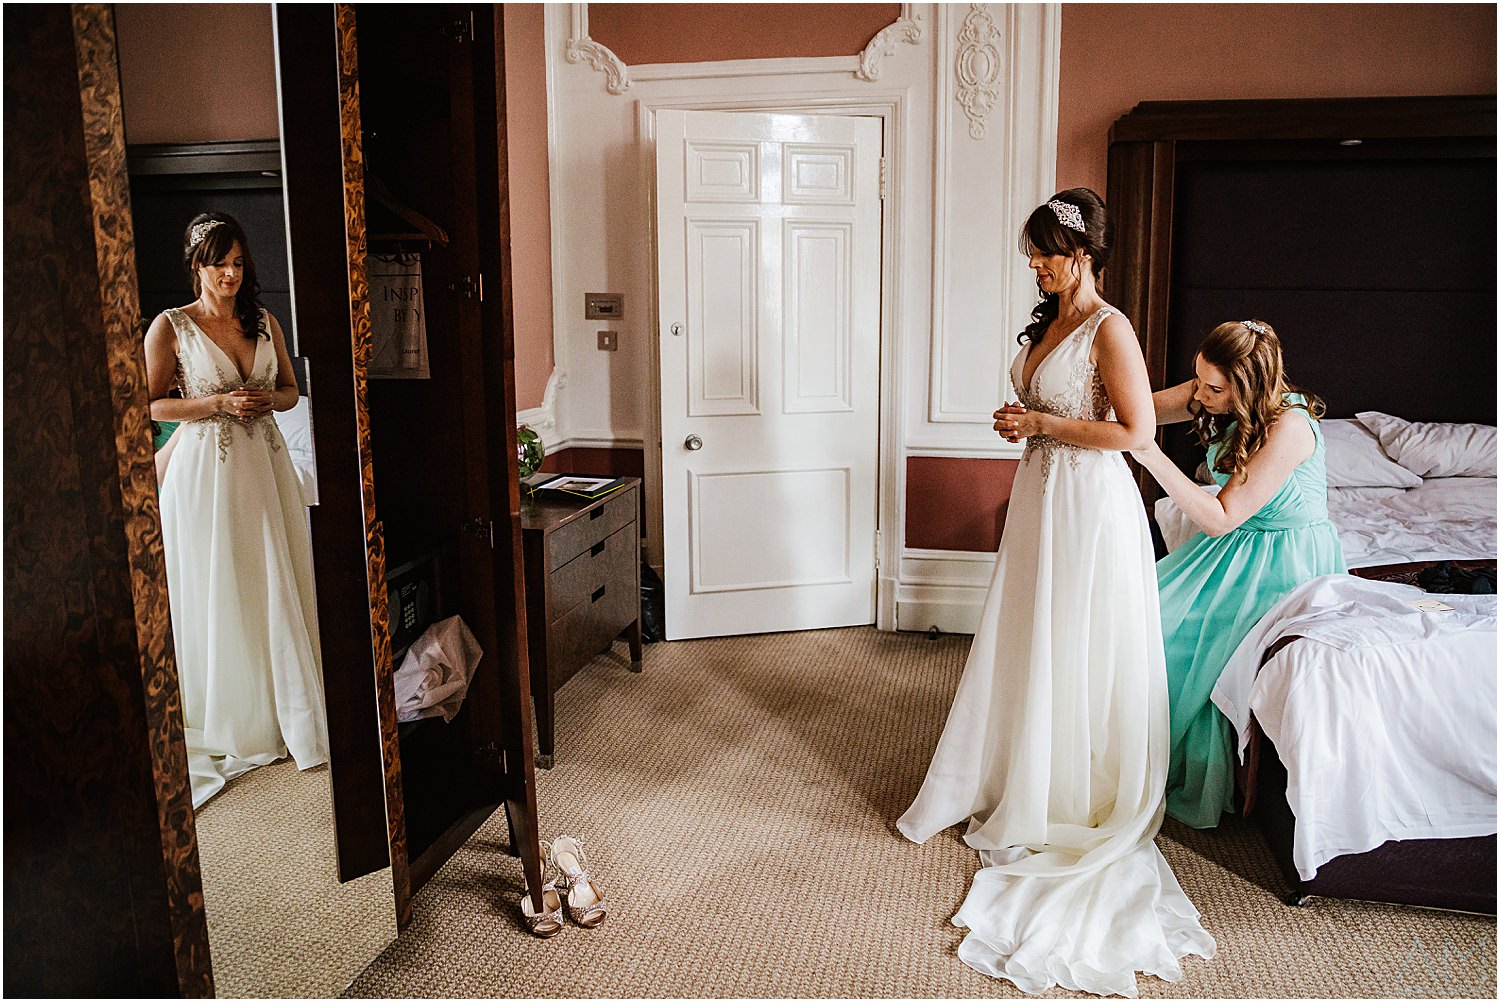 Midland Hotel wedding photography